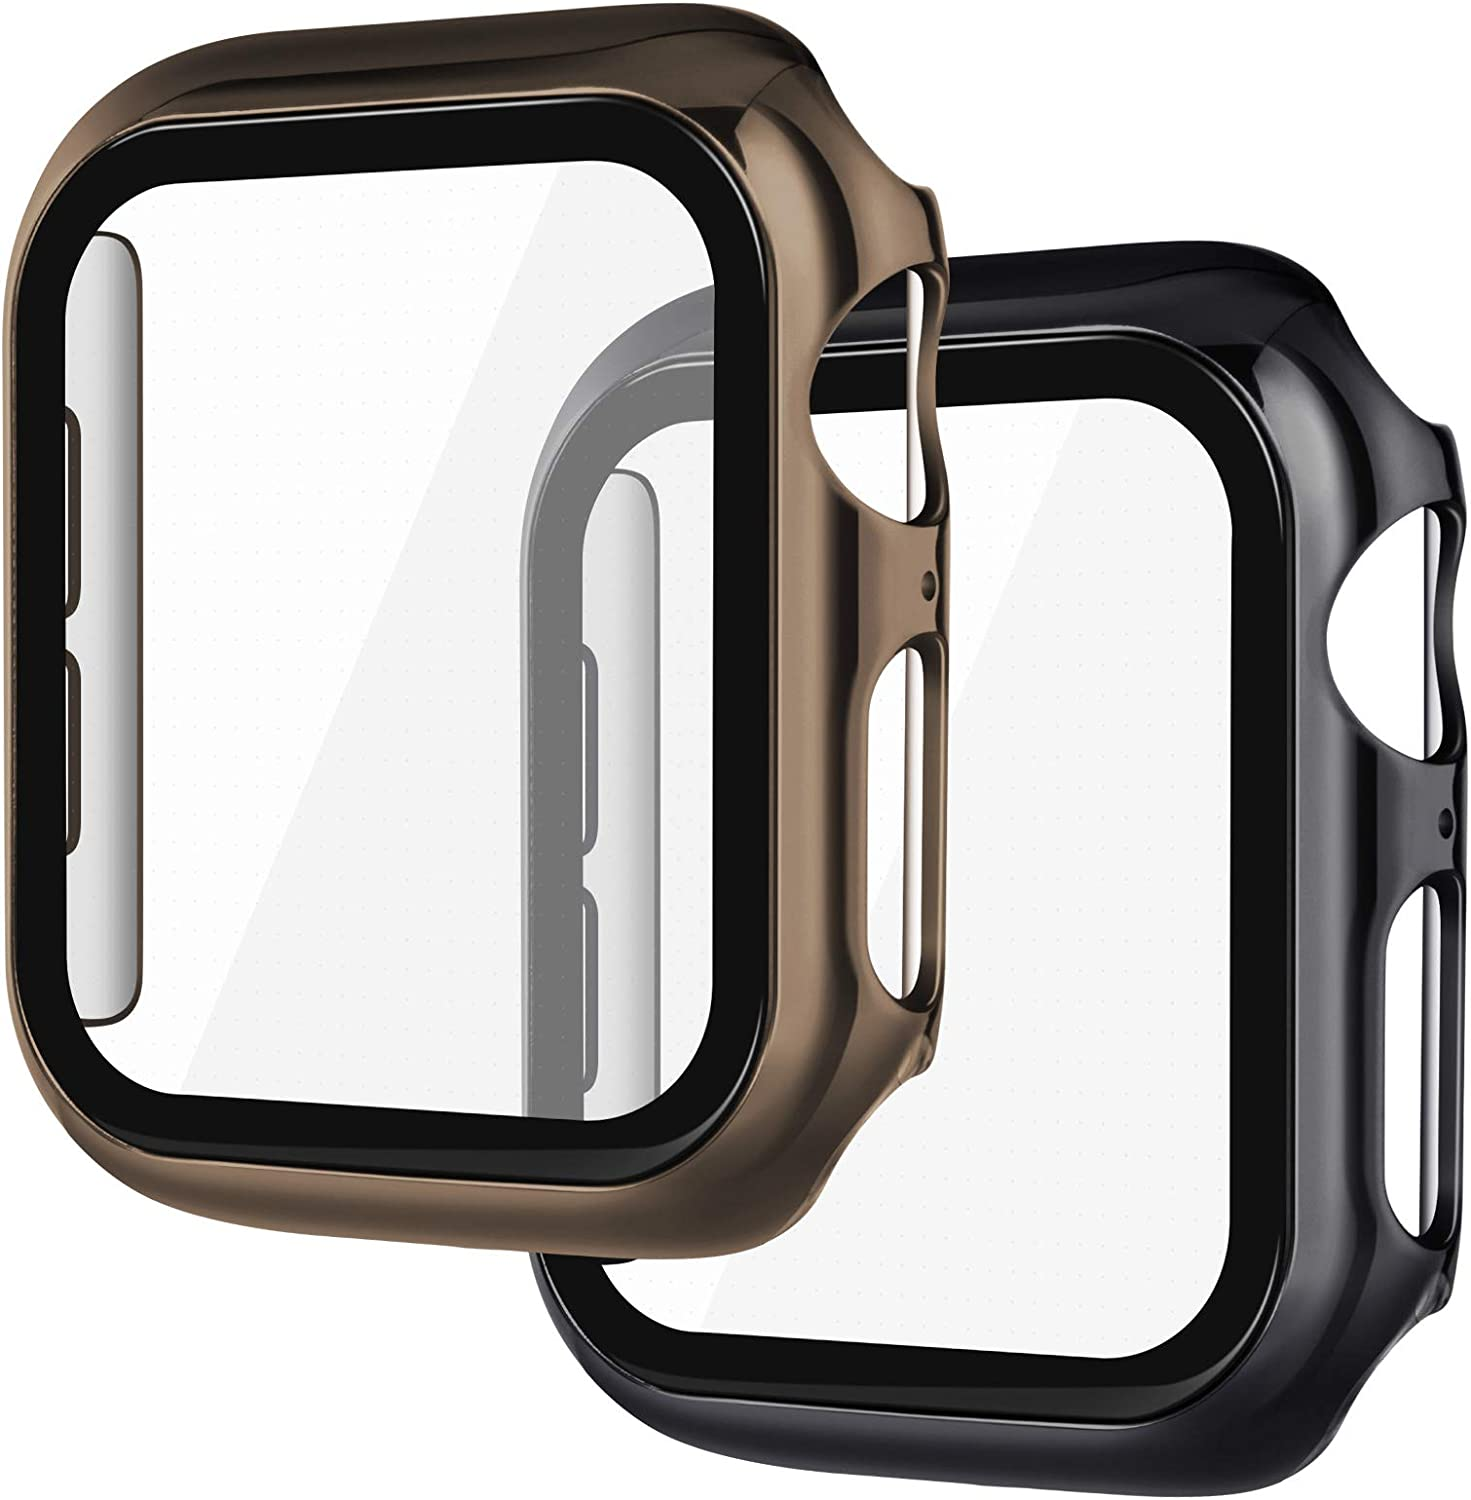 KADES Compatible for Apple Watch Cases 38mm with Screen Protector Full Coverage Hard Cover Defense Edge for iWatch SE Series 6 5 4 3 2 1 (38mm, 2-Pack, Black/Gold)